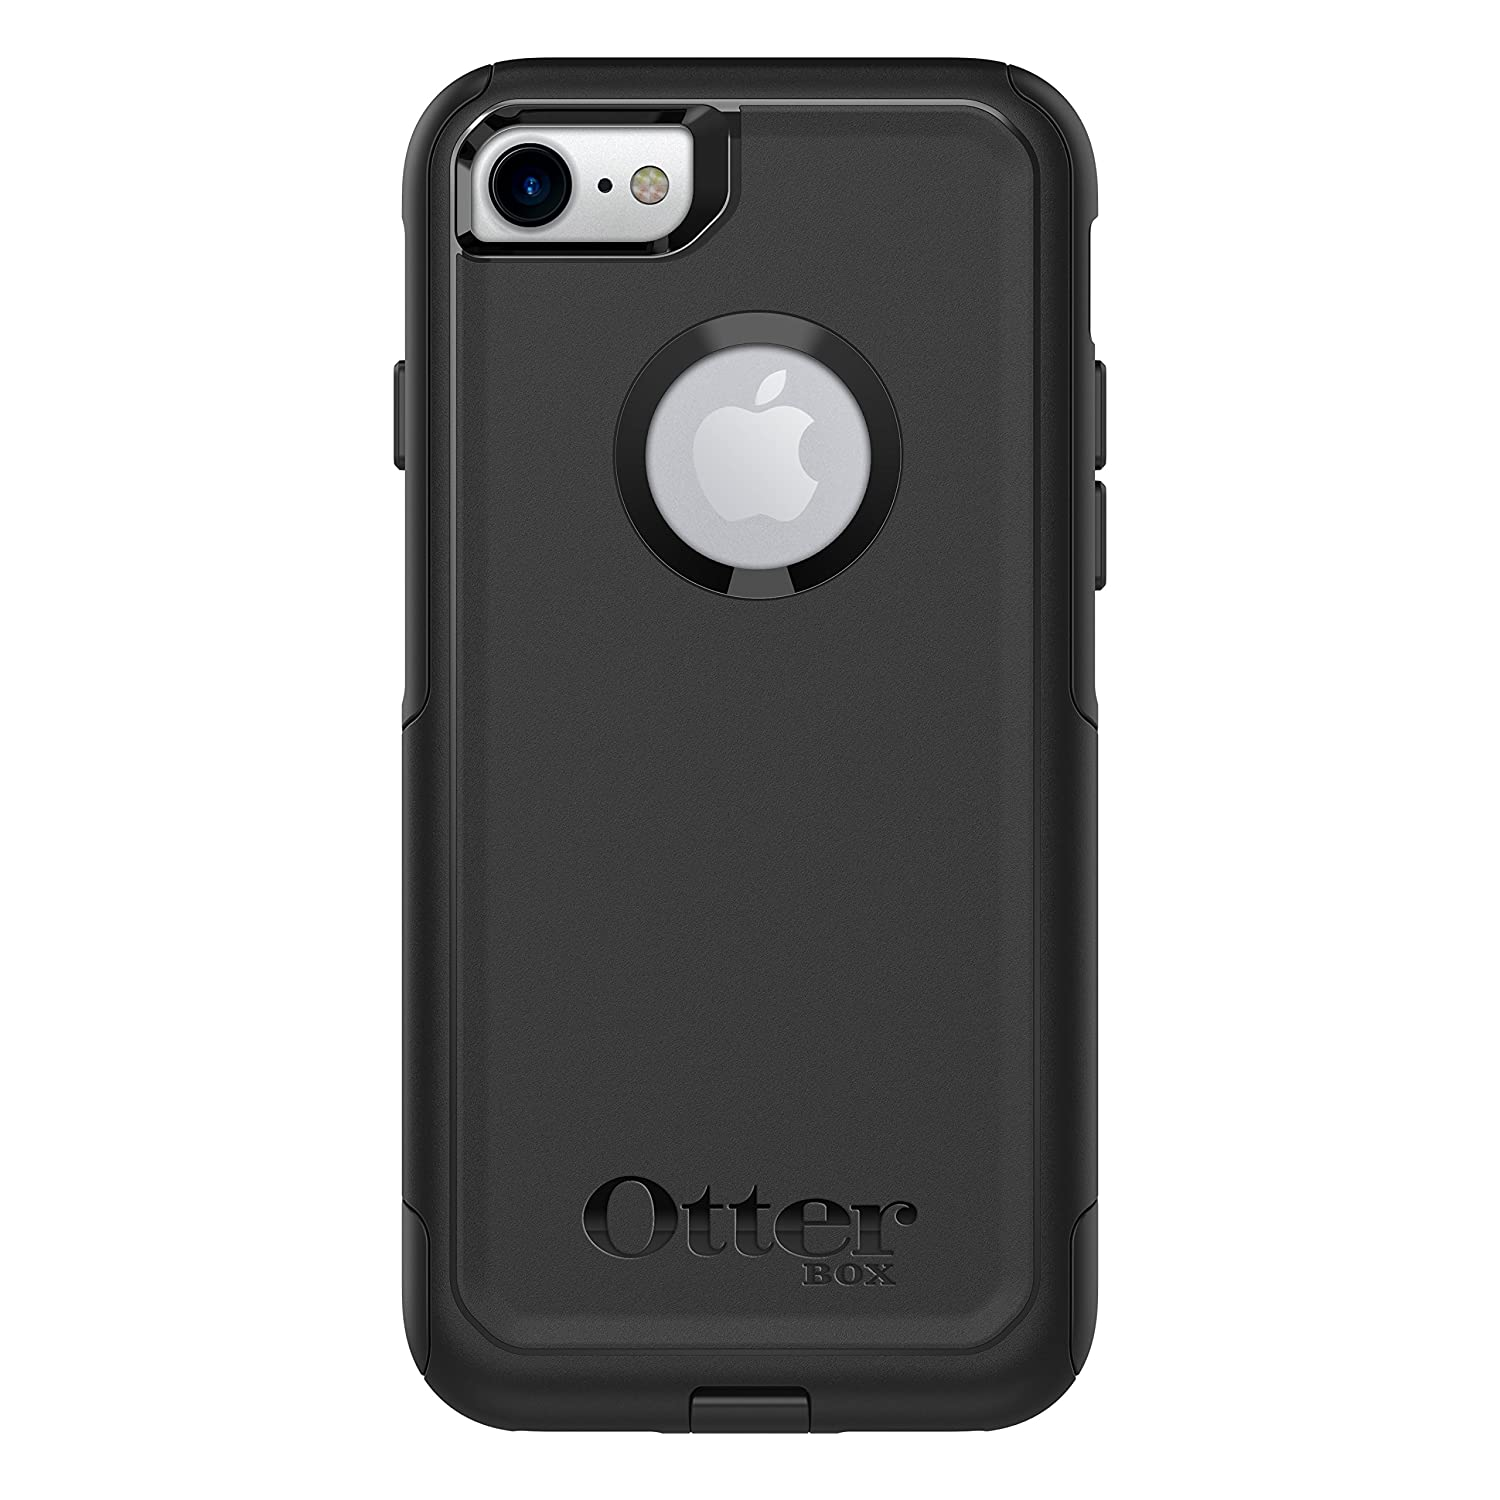 chanel iphone 7 case. otterbox commuter series case for iphone 7 (only) - frustration free packaging black chanel iphone